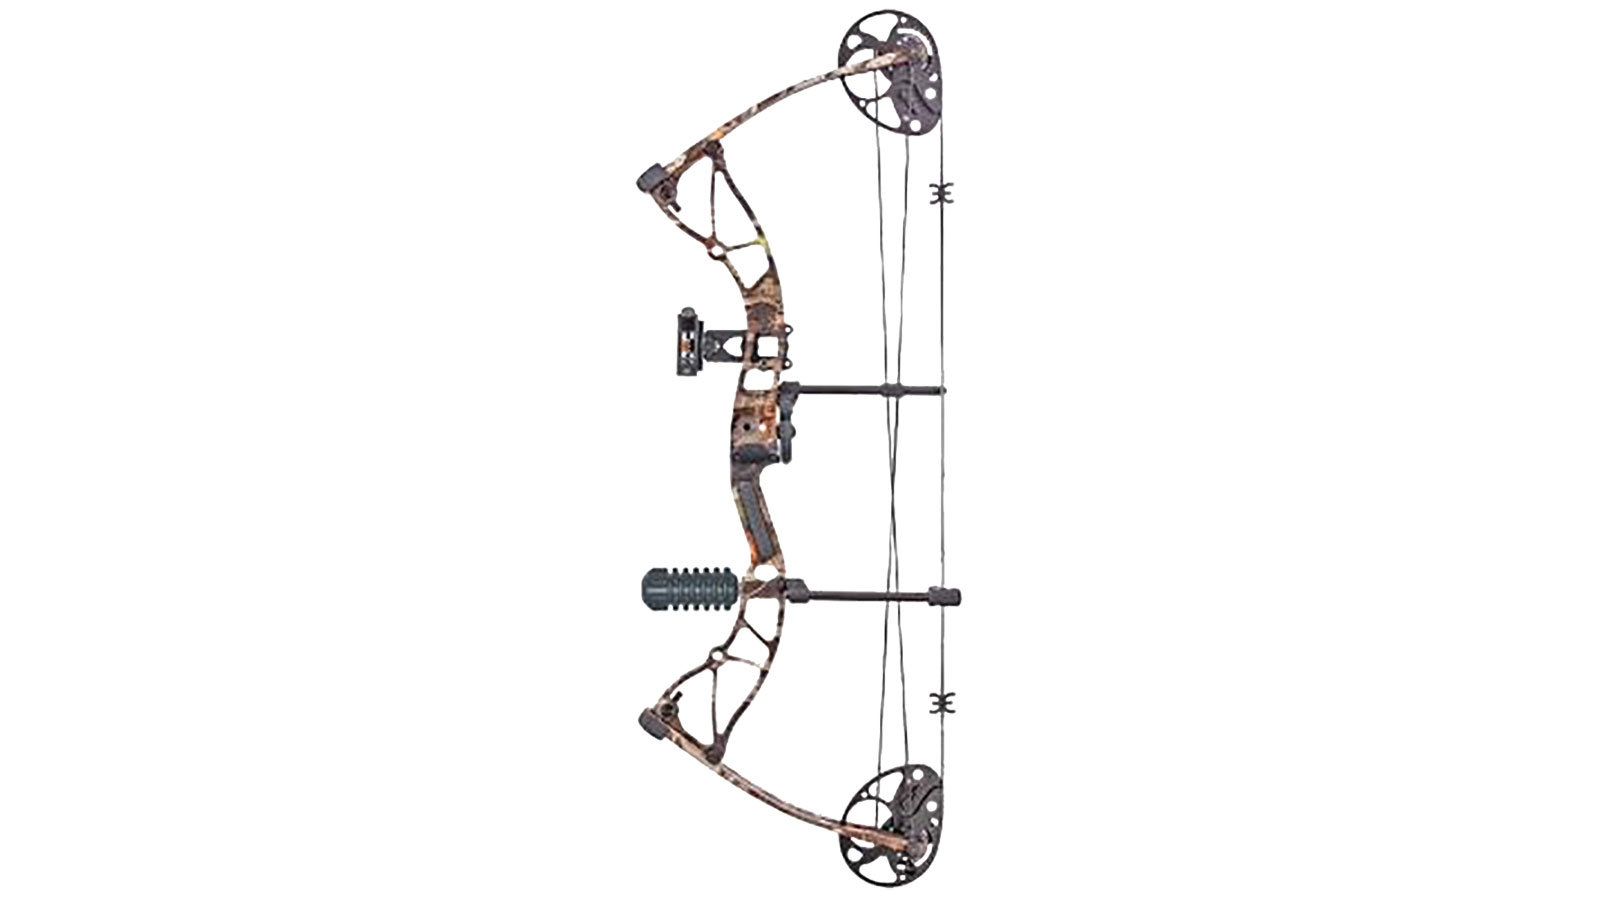 SA Sports Vulcan Compound Bow Package, 15-70-lb. Draw Weights